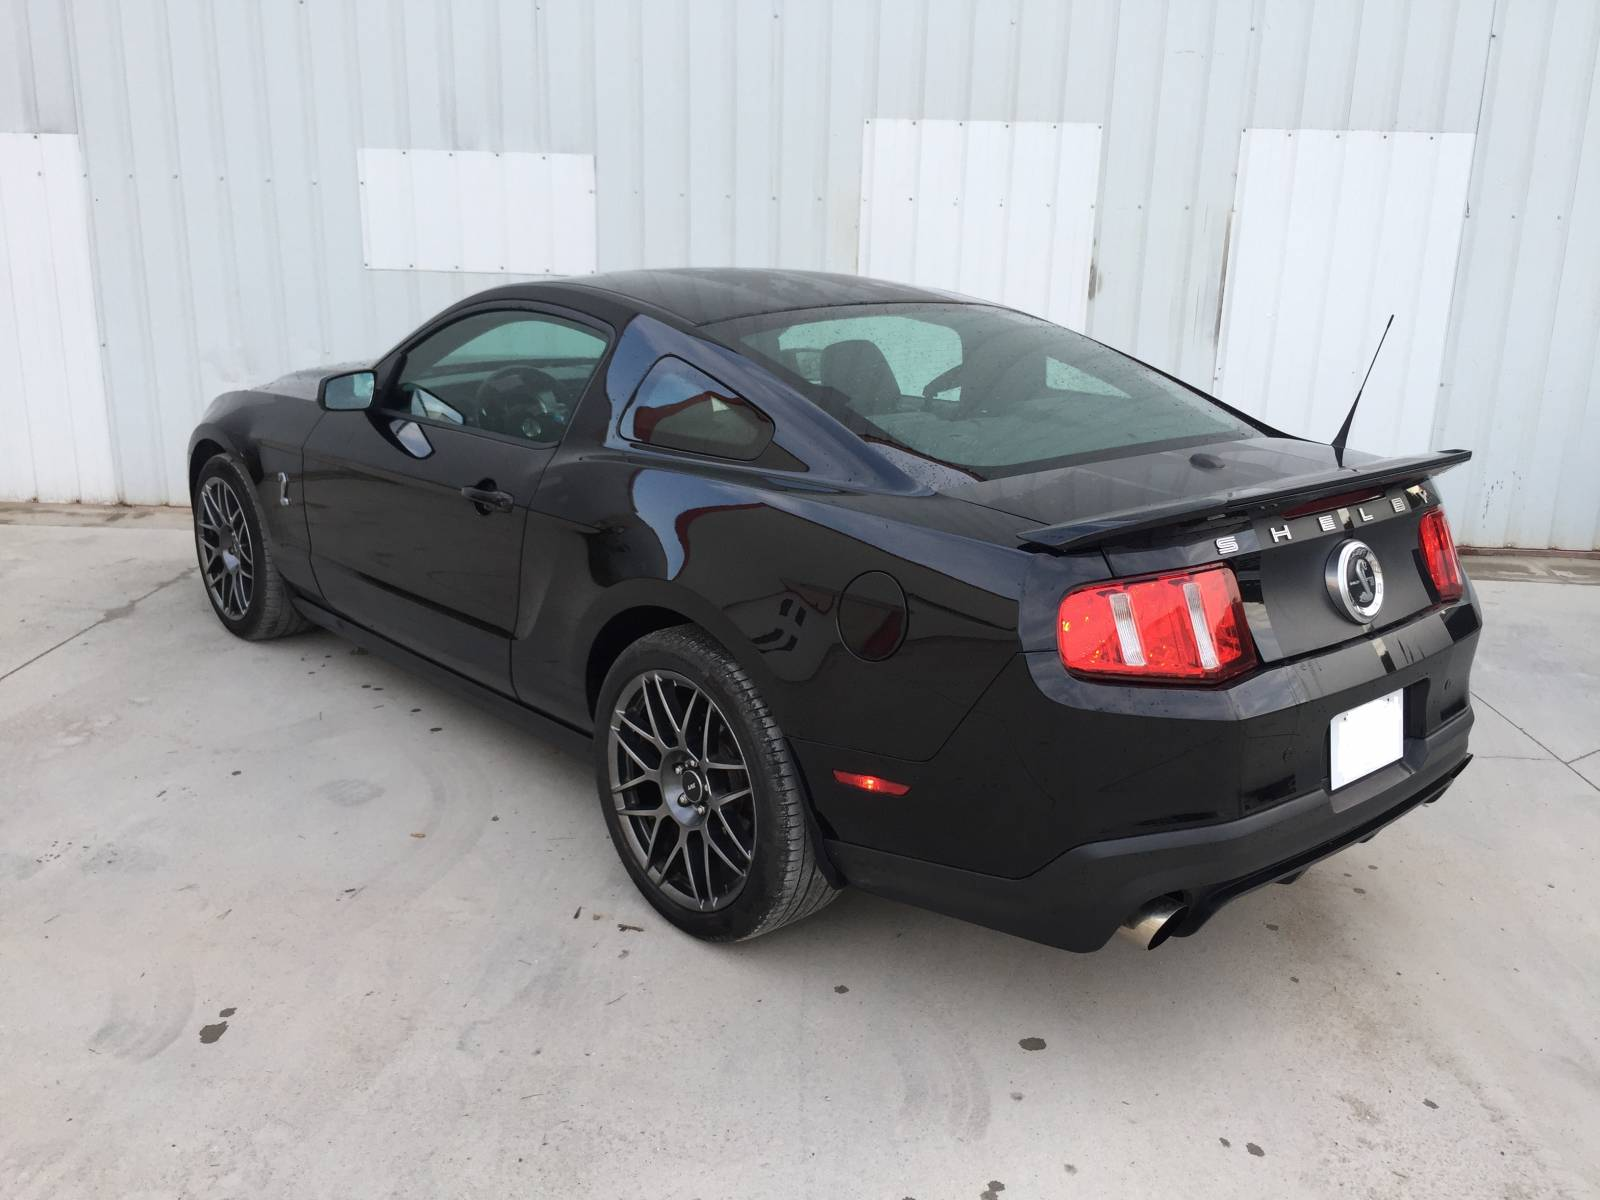 Voiture americaine d'occasion FORD Mustang Shelby GT500 ...